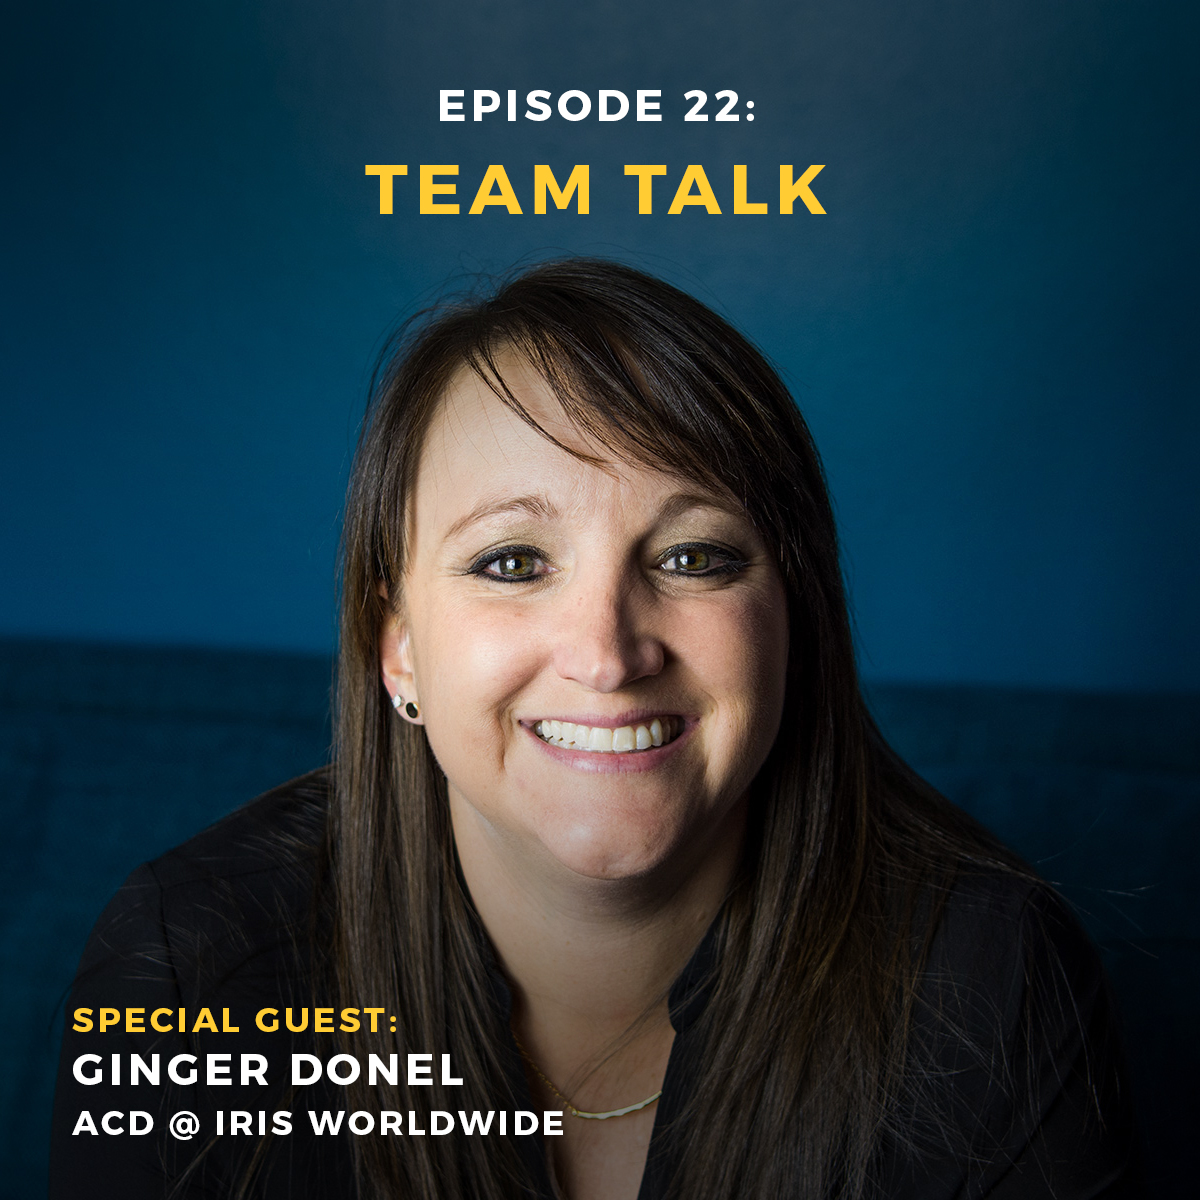 Podcast episode 22: team talk with Ginger Donel ACD at iris Worldwide